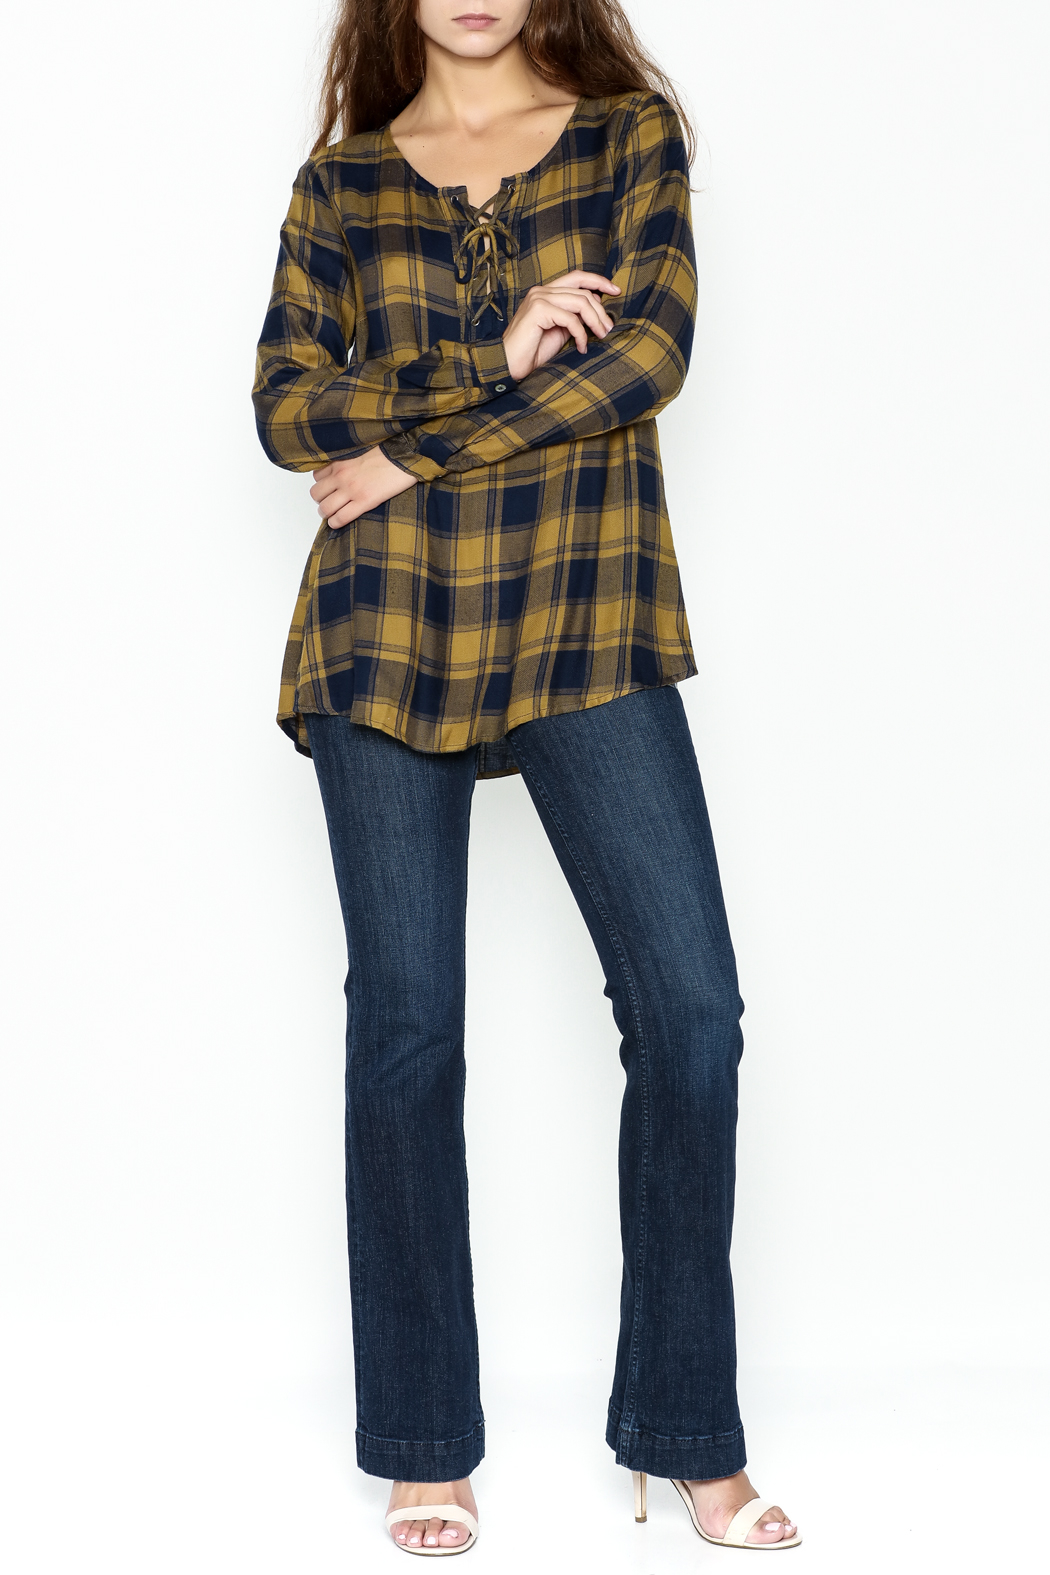 Mystree Lace Up Plaid Top - Side Cropped Image